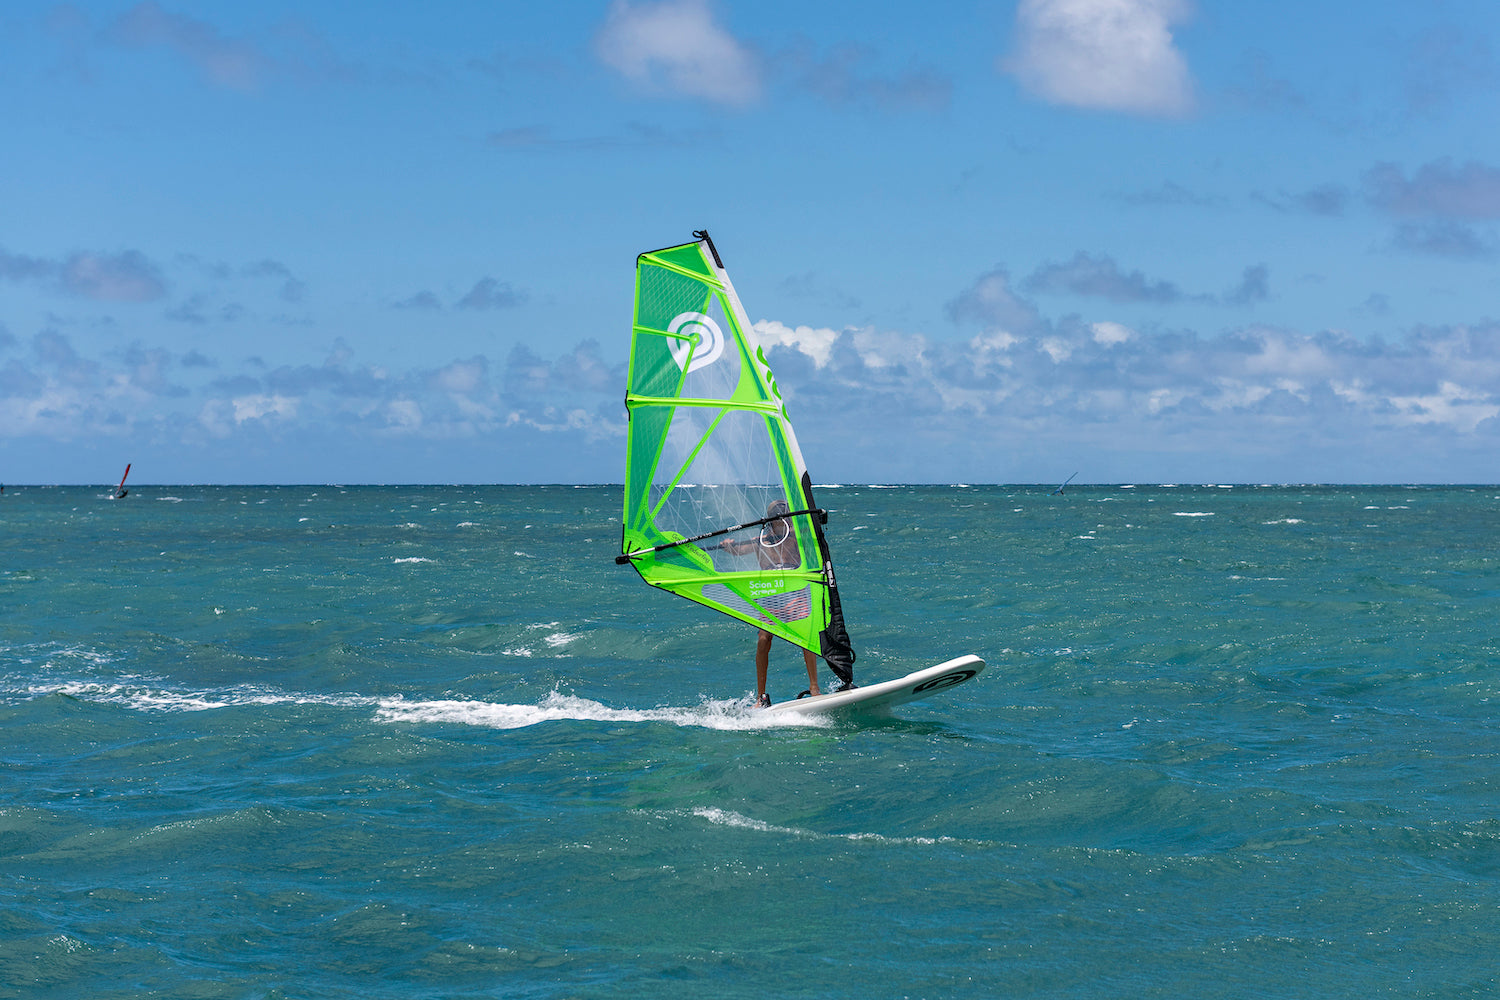 Kids Can Rip on the Goya Surf Windsurf Board